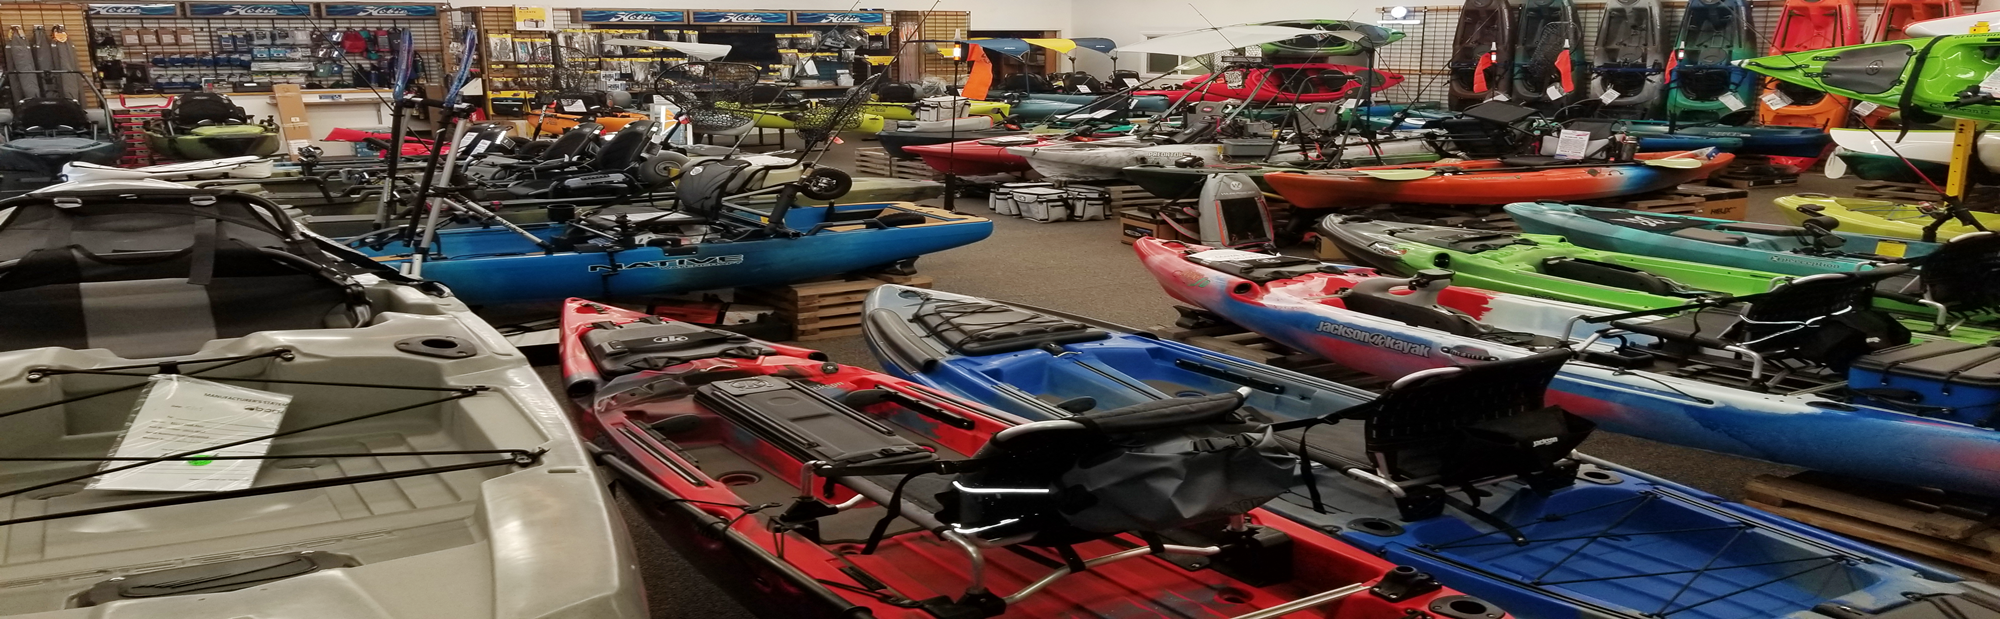 Kayak City